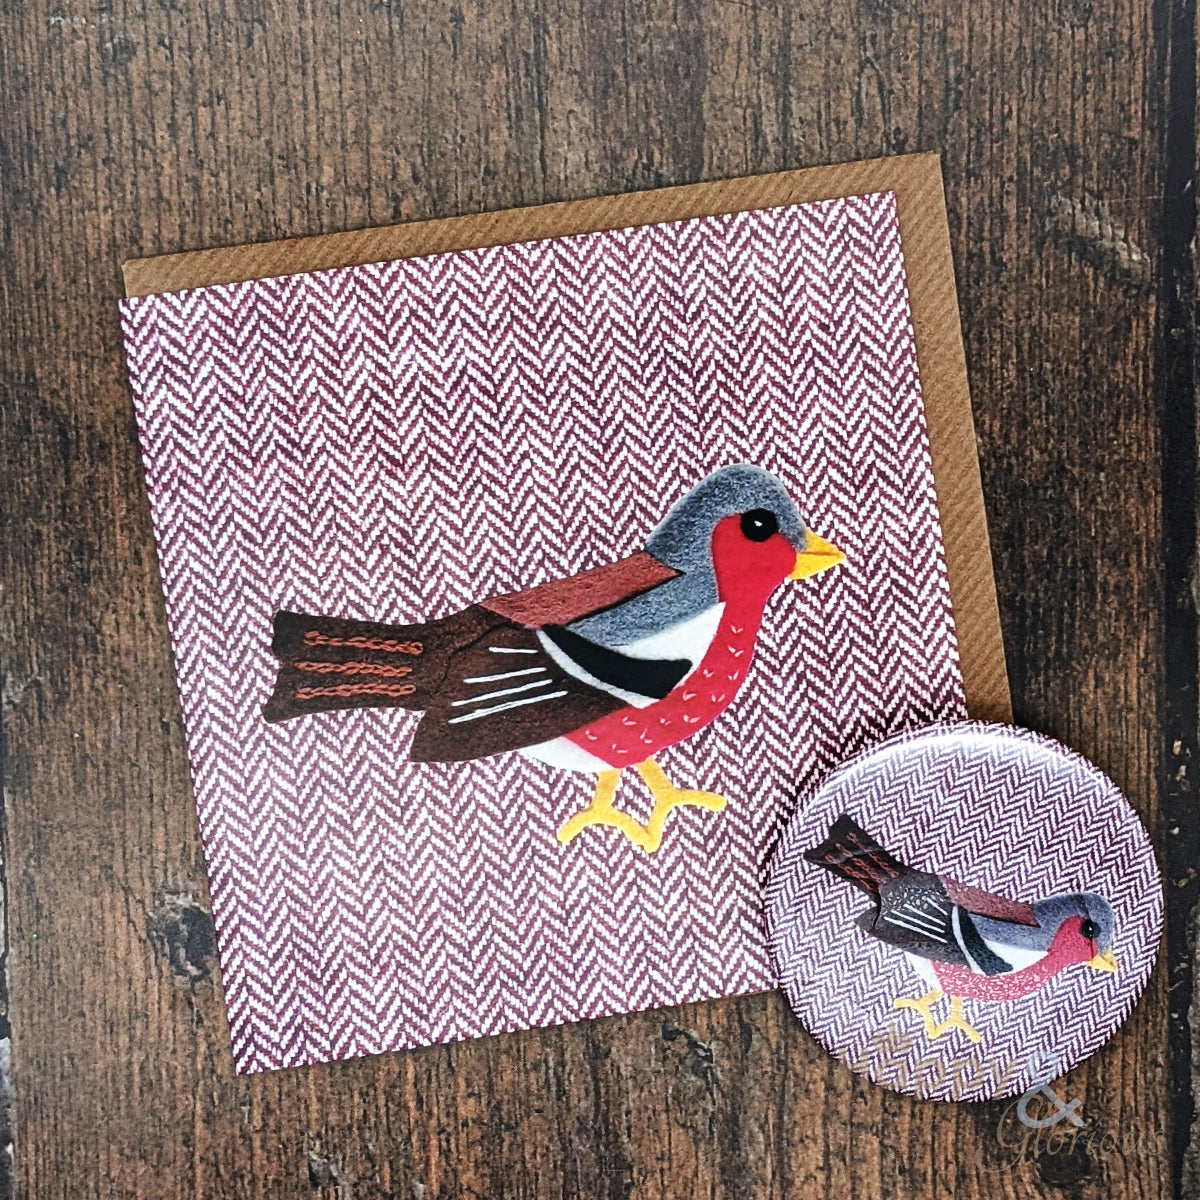 Tweedy birds chaffinch pocket mirror & card